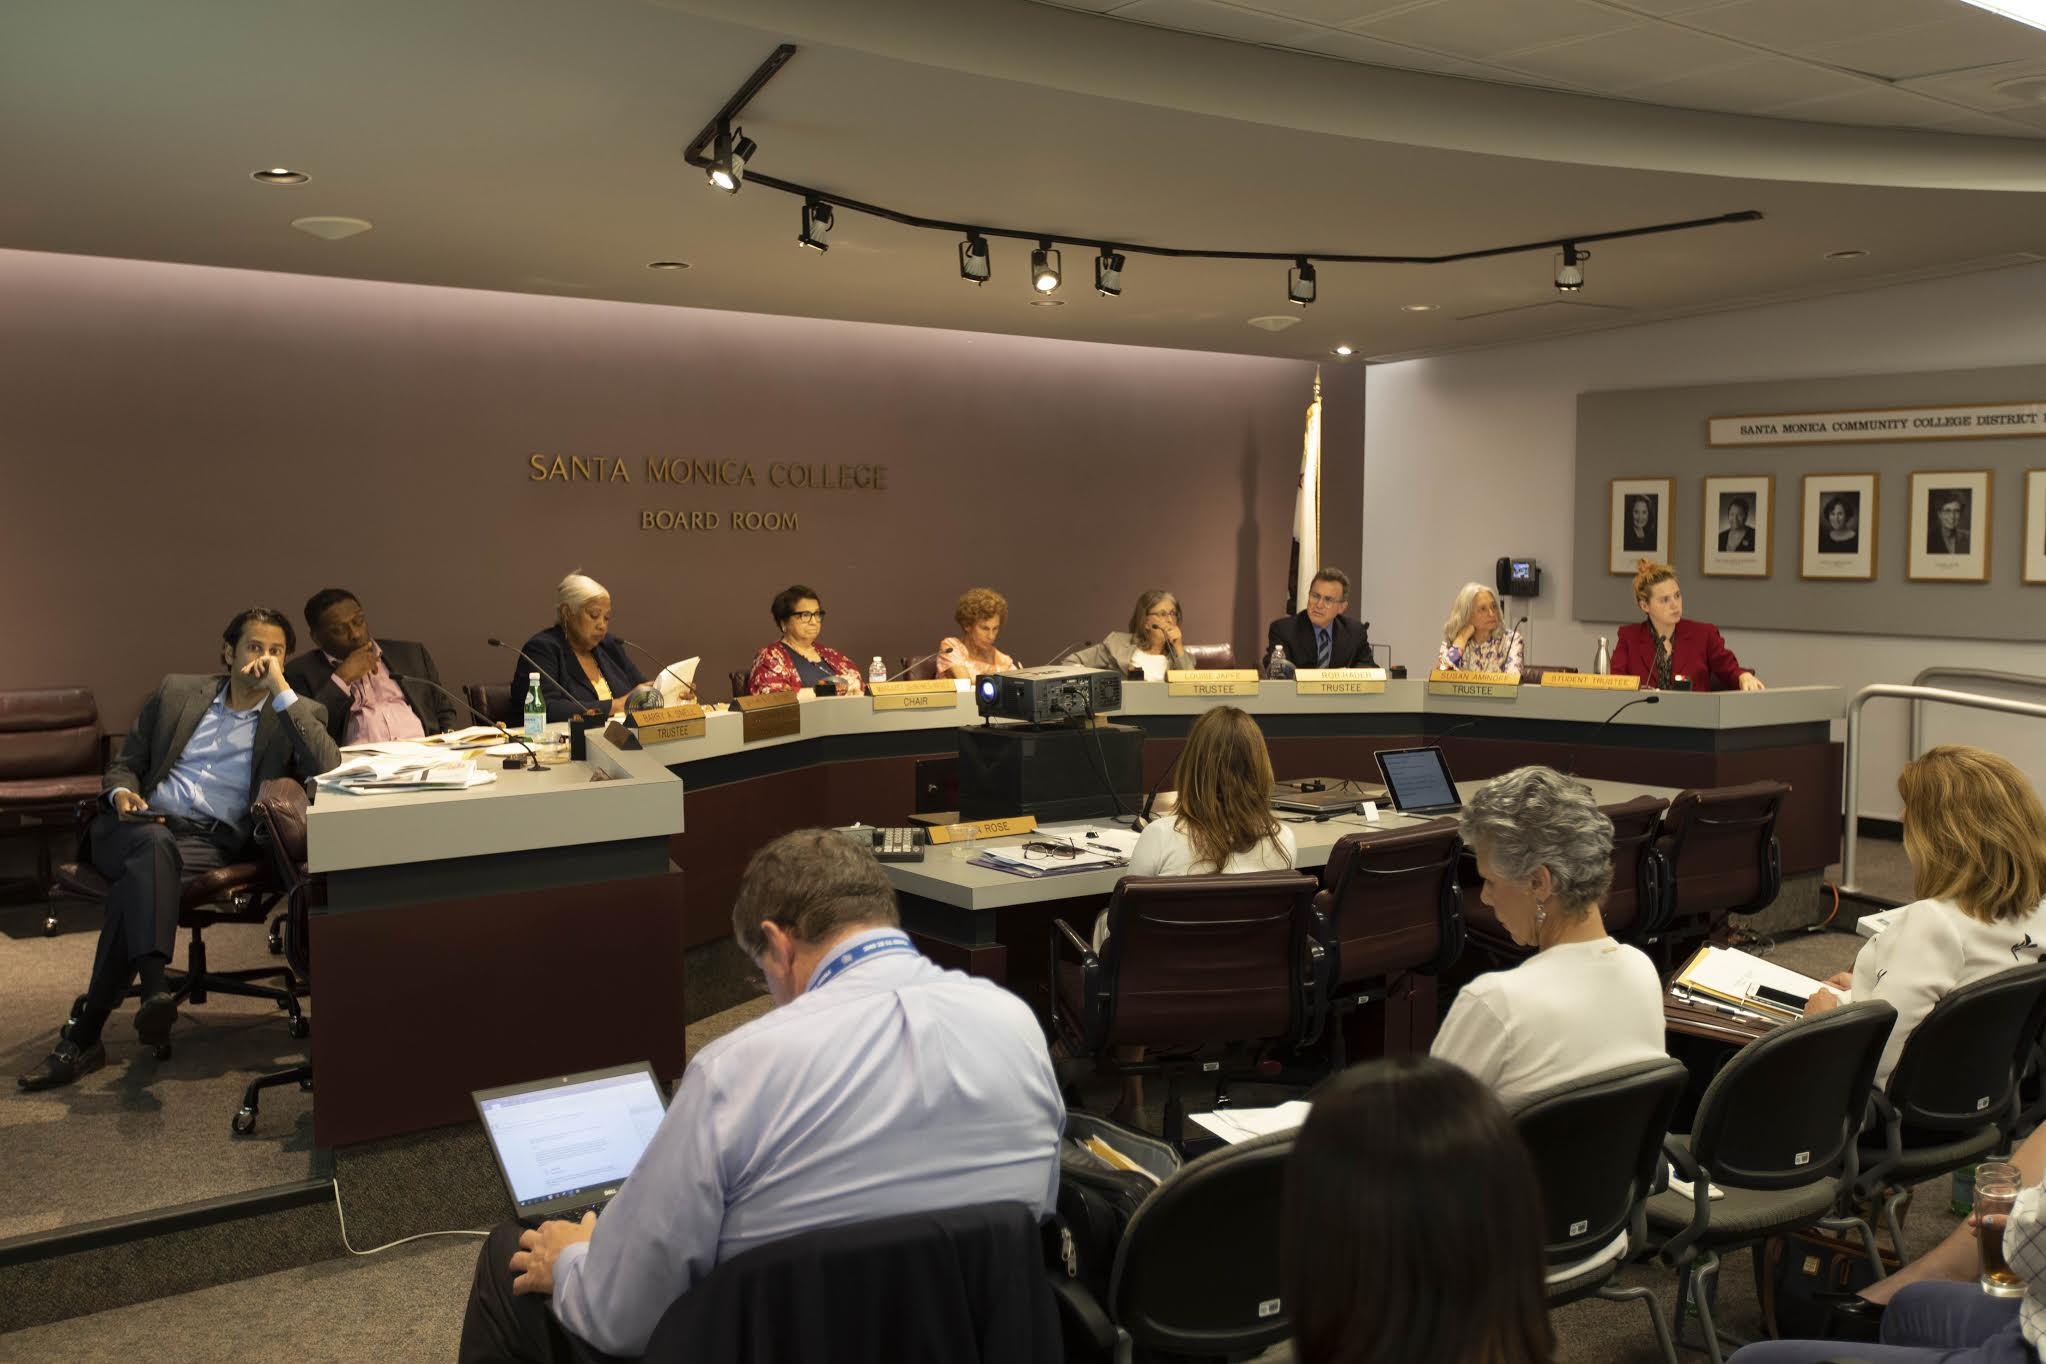 SMC Board of Trustees review the proposed 2019 - 2020 budget during the September 3rd meeting at Santa Monica College in Santa Monica Calif. (Joshua Nicoloro/The Corsair)